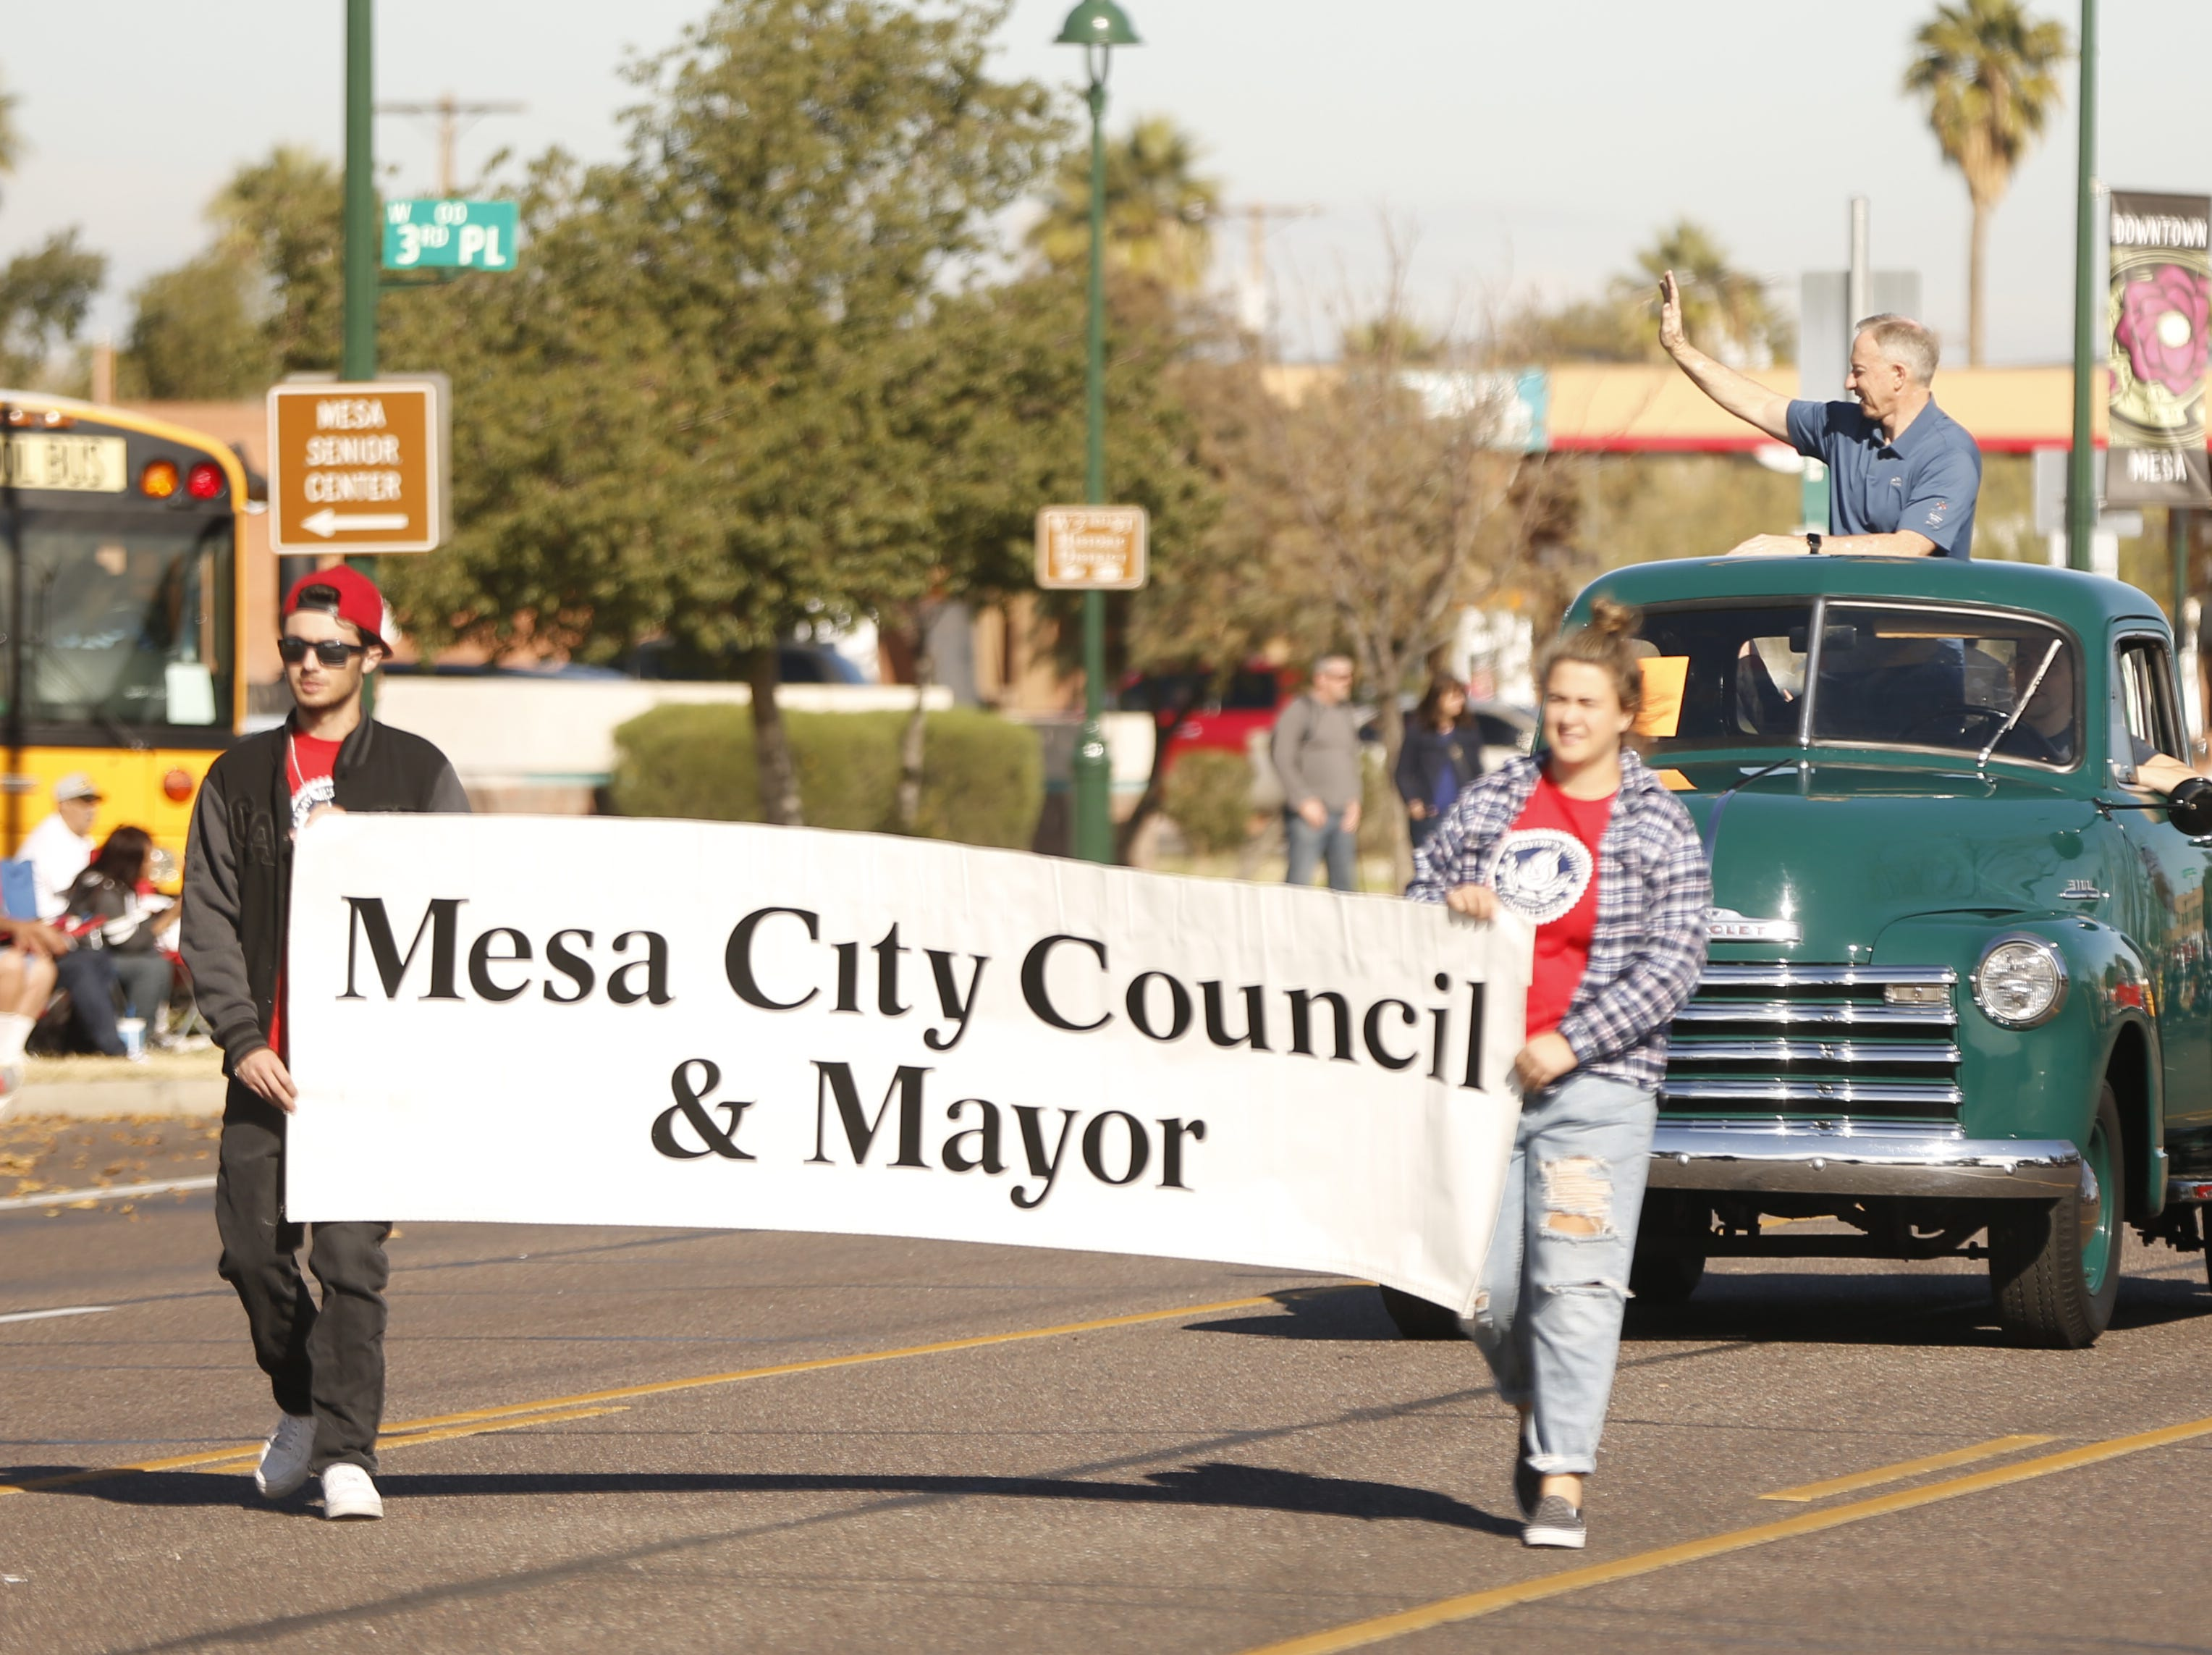 Mesa city mayor John Giles leads off the parade during the MLK Day Parade in Mesa, Ariz. on January 21, 2019.